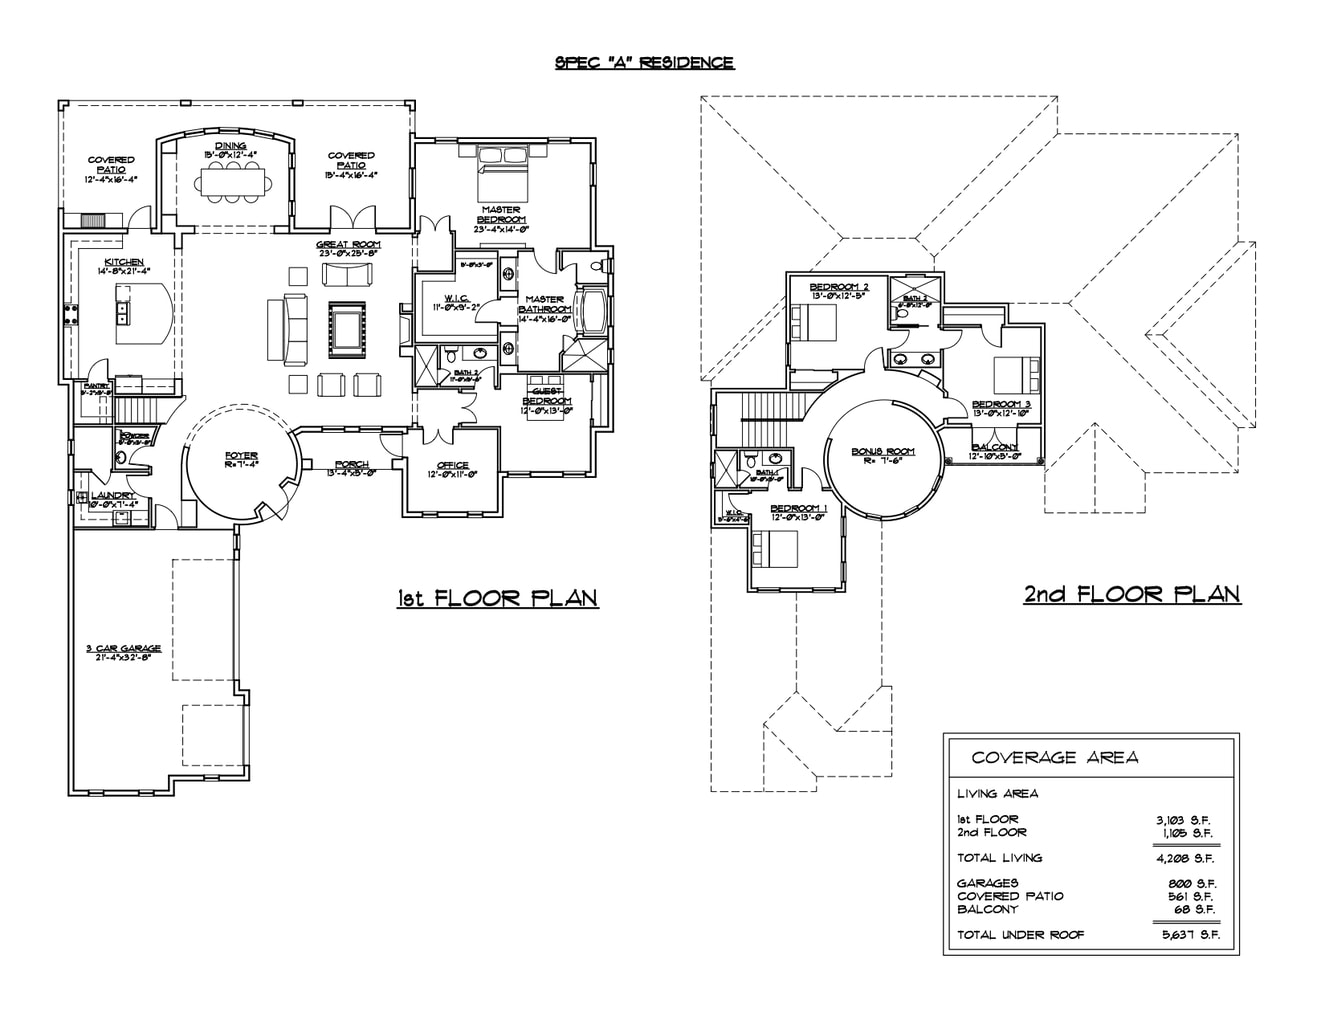 How to squeeze 6 000 square feet into a 4 000 square foot home for 4000 sq ft floor plans